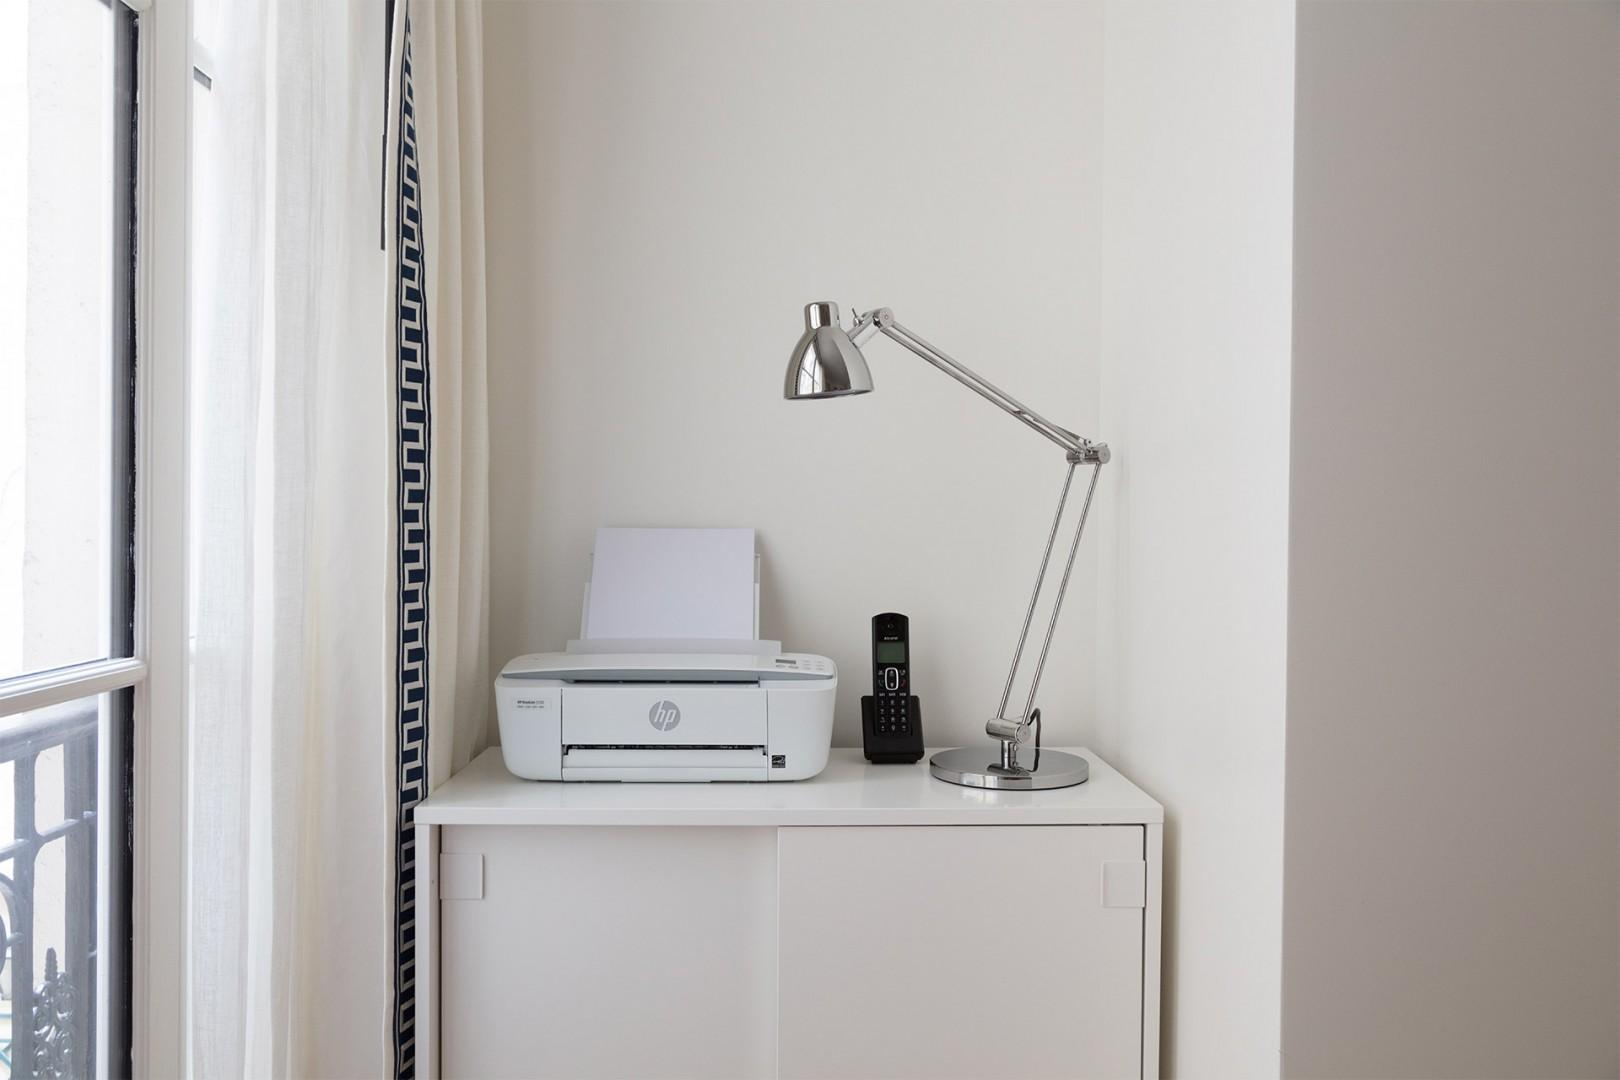 Printer and phone in bedroom 3